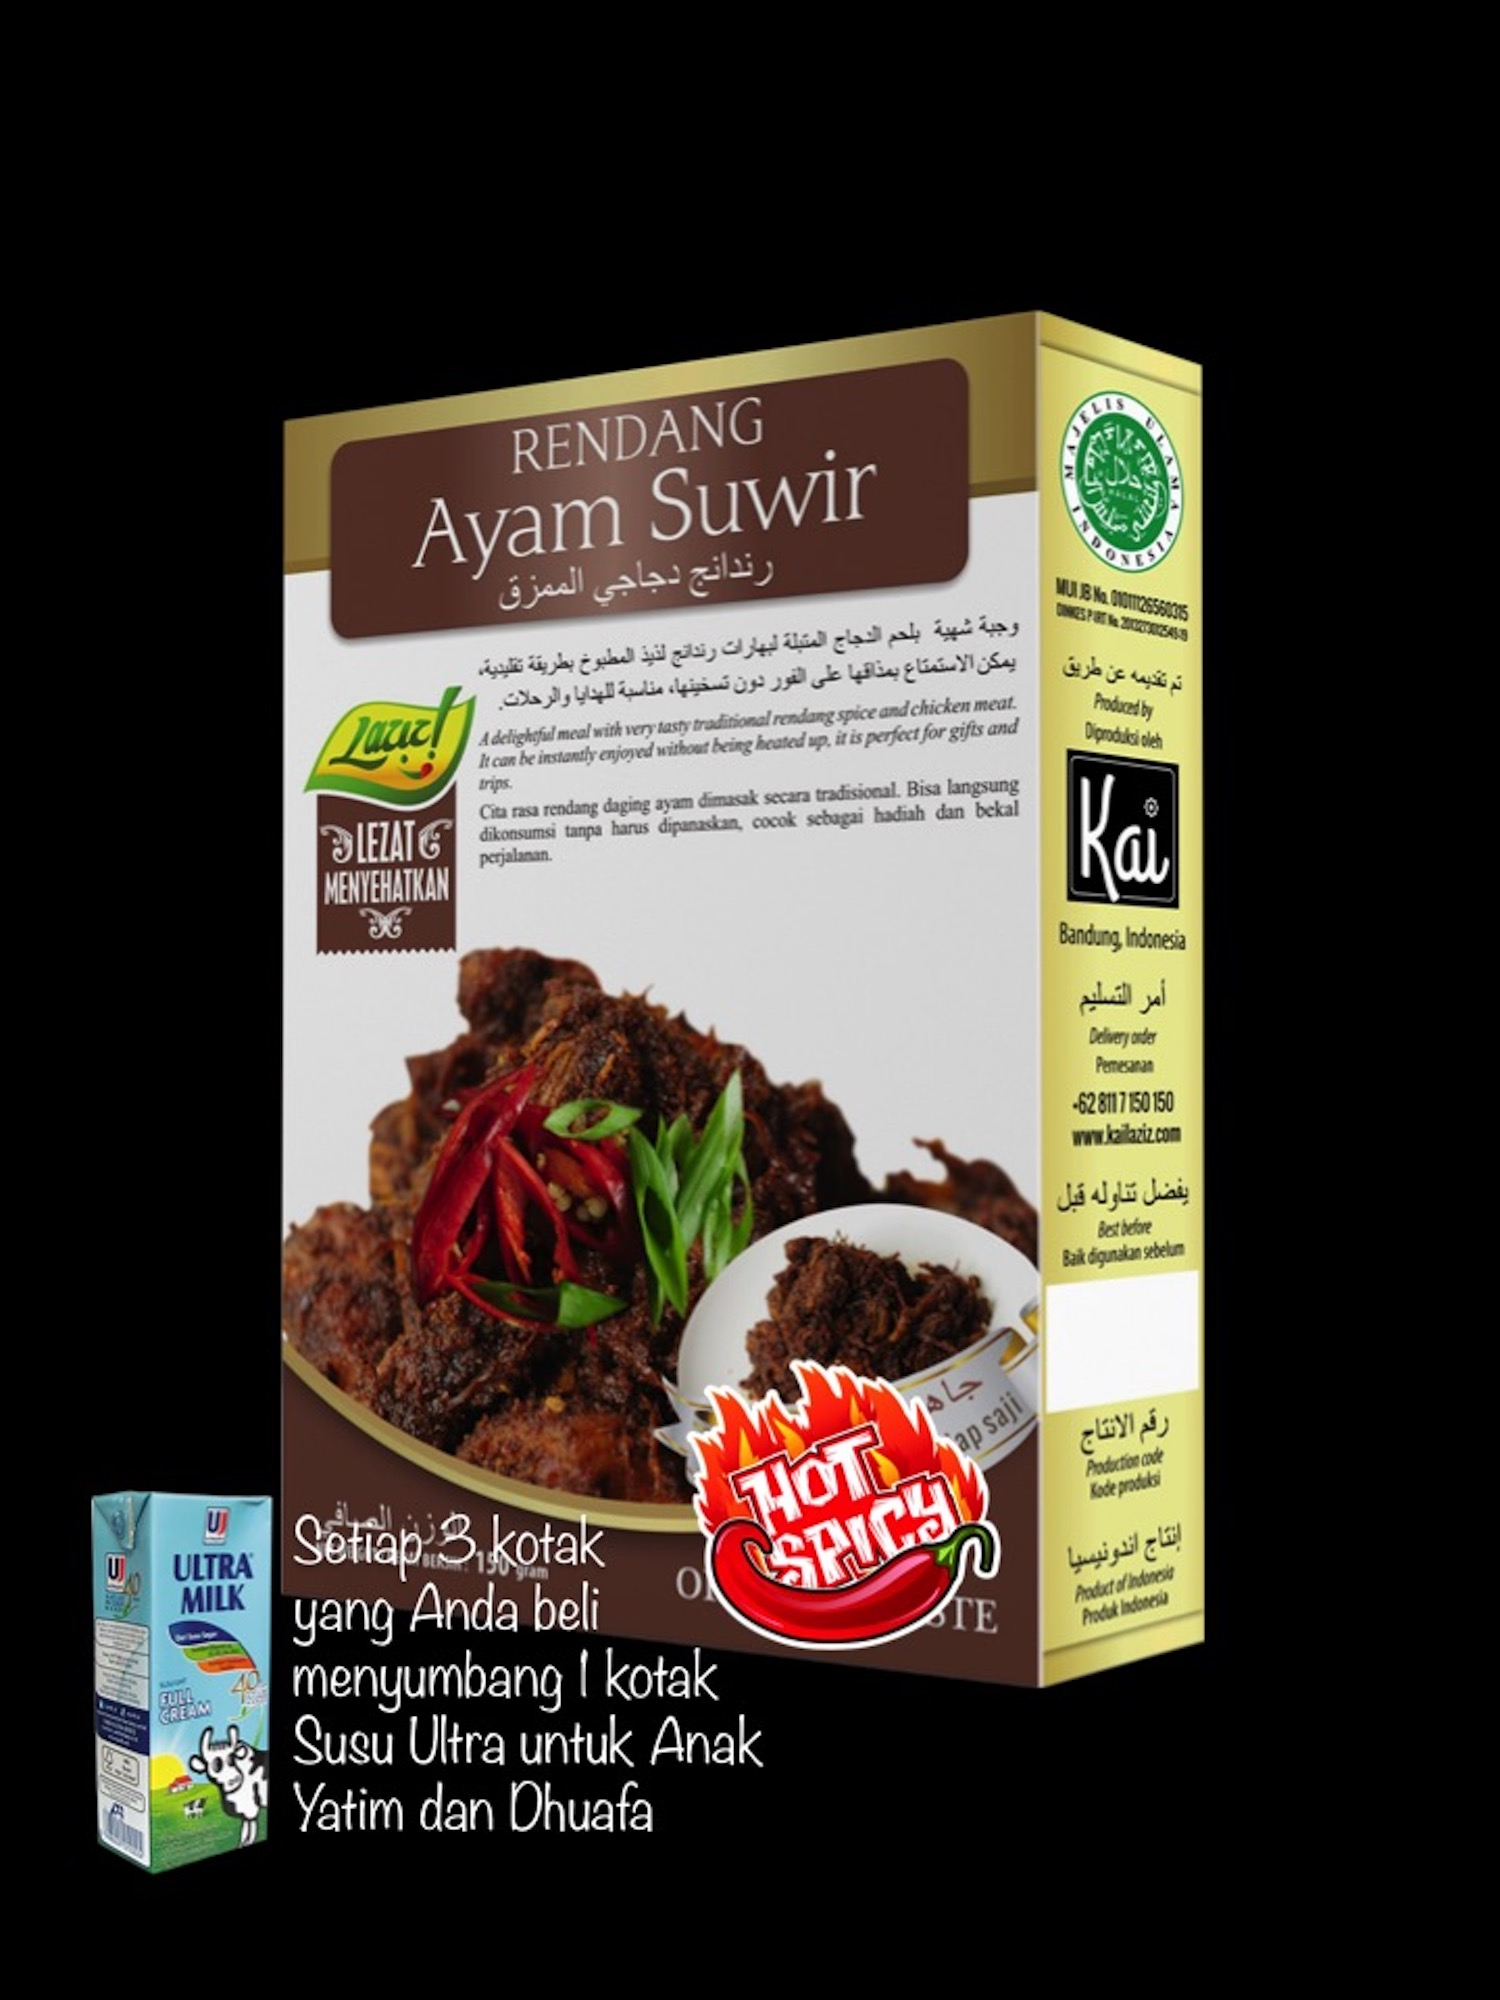 RENDANG AYAM SUWIR HOT SPICY KAI FOOD 150GR